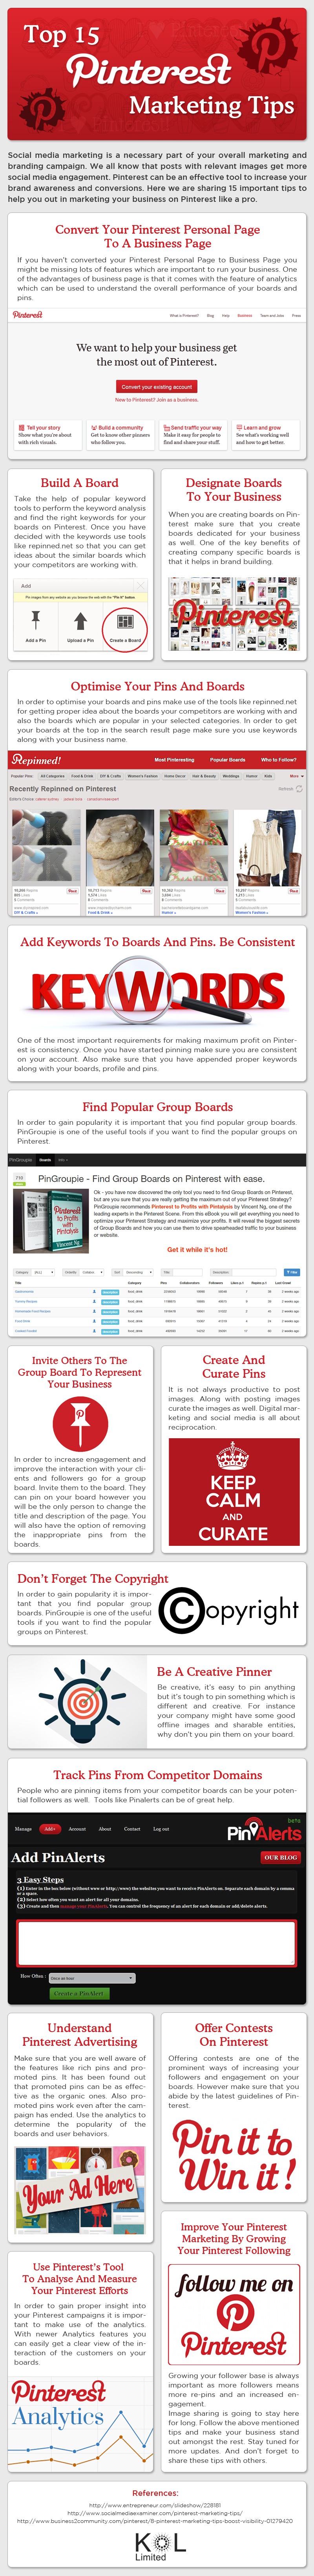 Most Important Pinterest Marketing Tips - Image 1